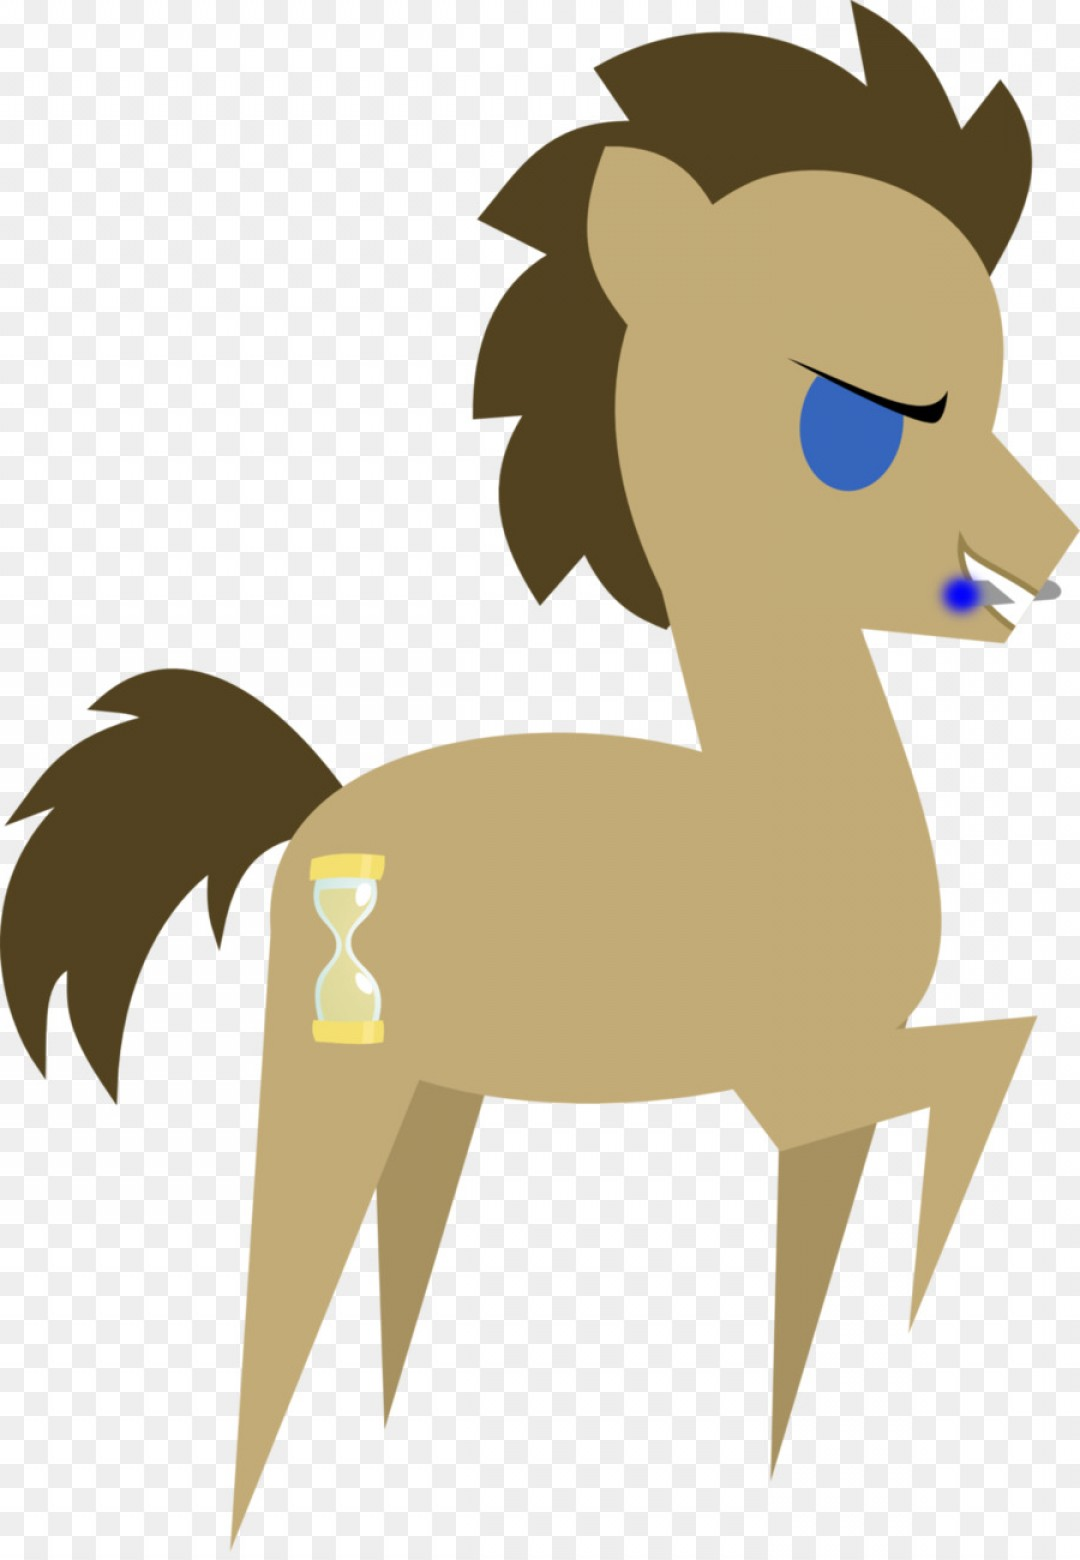 Derpy Hooves Vector: Png Derpy Hooves Vector Graphics Pony Twilight Sparkle